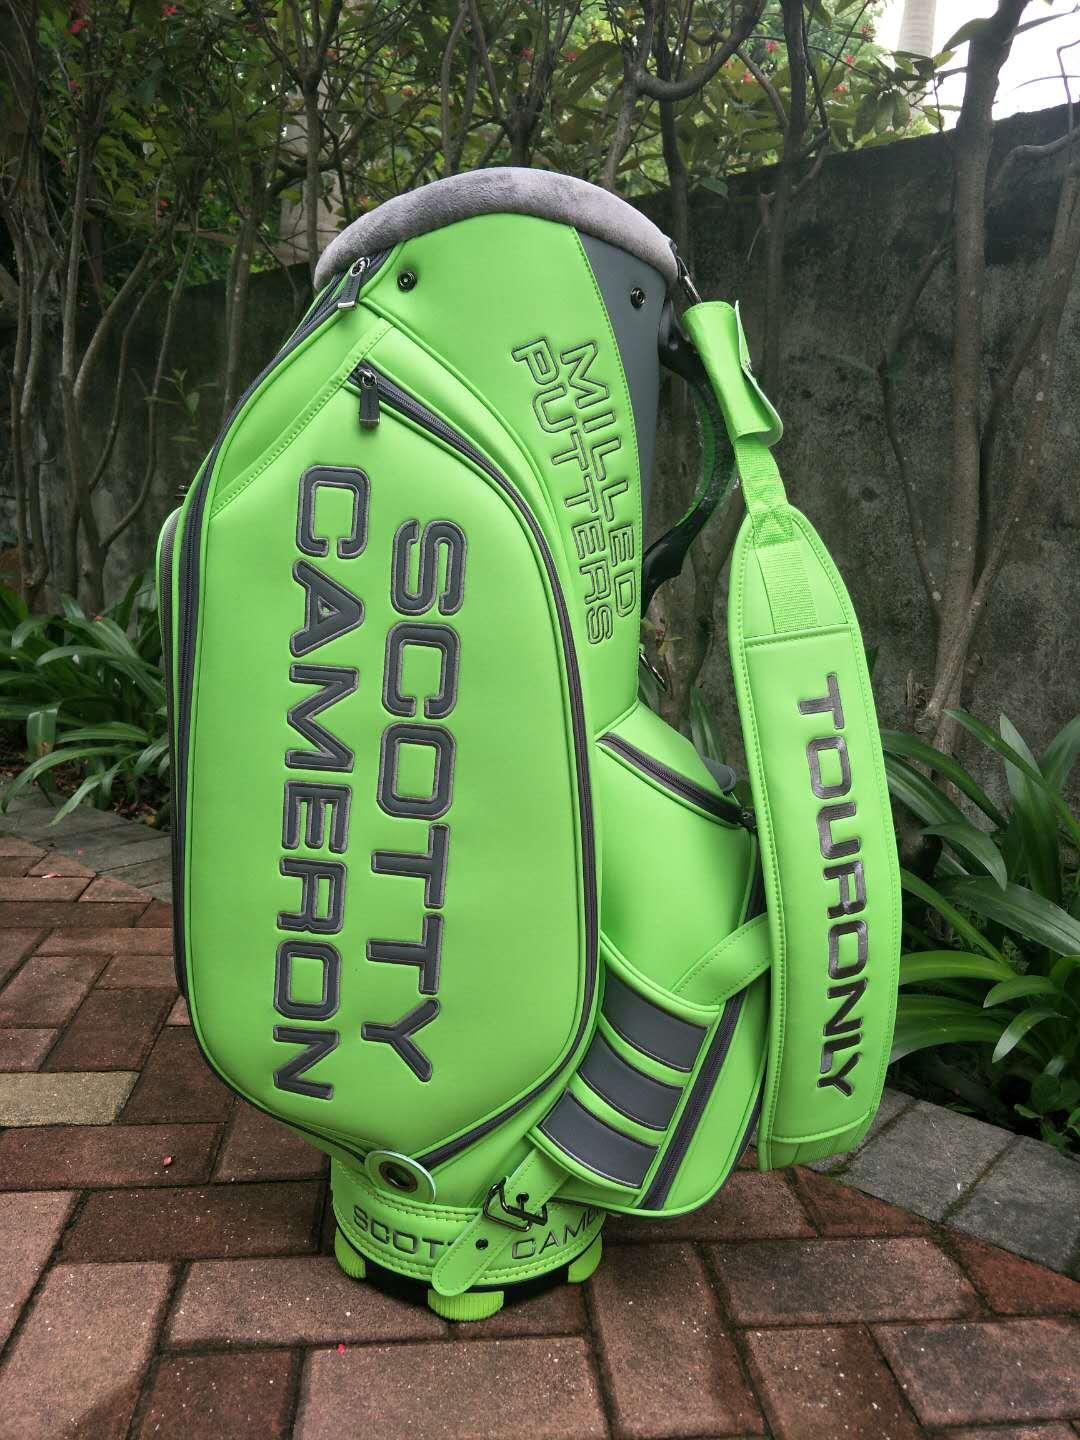 Scotty-Cameron-Green-Staff-Bag-Circle-T-Studio-Design-With-Head-Covers-New     Scotty-Cameron-Green-Staff-Bag-Circle-T-Studio-Design-With-Head-Covers-New     Scotty-Cameron-Green-Staff-Bag-Circle-T-Studio-Design-With-Head-Covers-New     Scotty-Cameron-Green-Staff-Bag-Circle-T-Studio-Design-With-Head-Covers-New     Scotty-Cameron-Green-Staff-Bag-Circle-T-Studio-Design-With-Head-Covers-New     Scotty-Cameron-Green-Staff-Bag-Circle-T-Studio-Design-With-Head-Covers-New  Details about  Scotty Cameron Green Staff Bag Circle T Studio Design With Head Covers